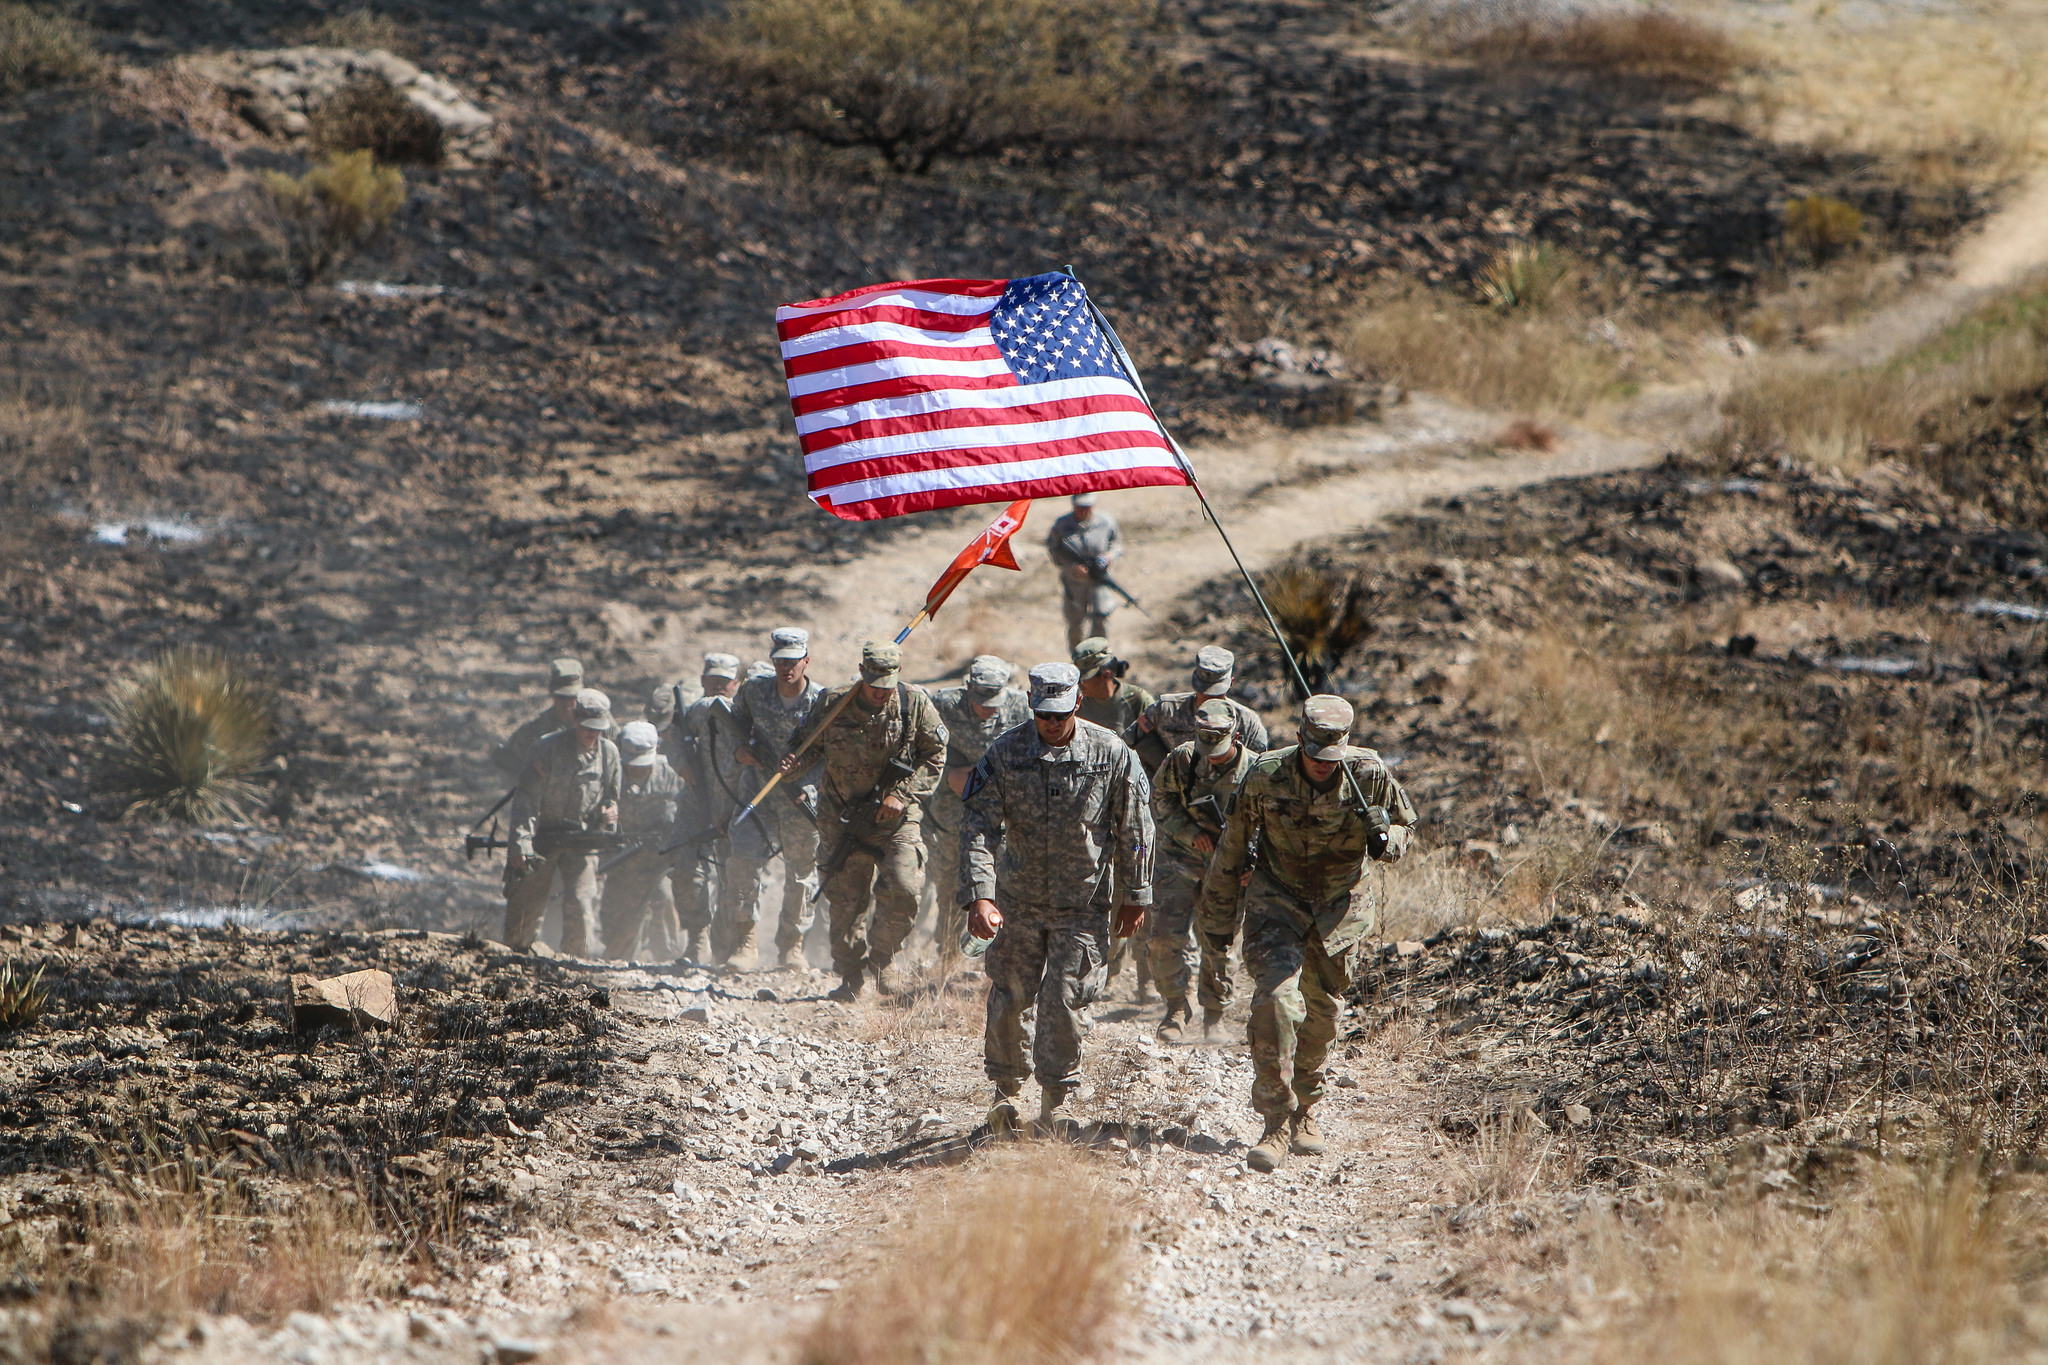 A picture of a group of soldiers hiking up a dusty road carrying two flags, a U.S. Flag and a flag for their unit.